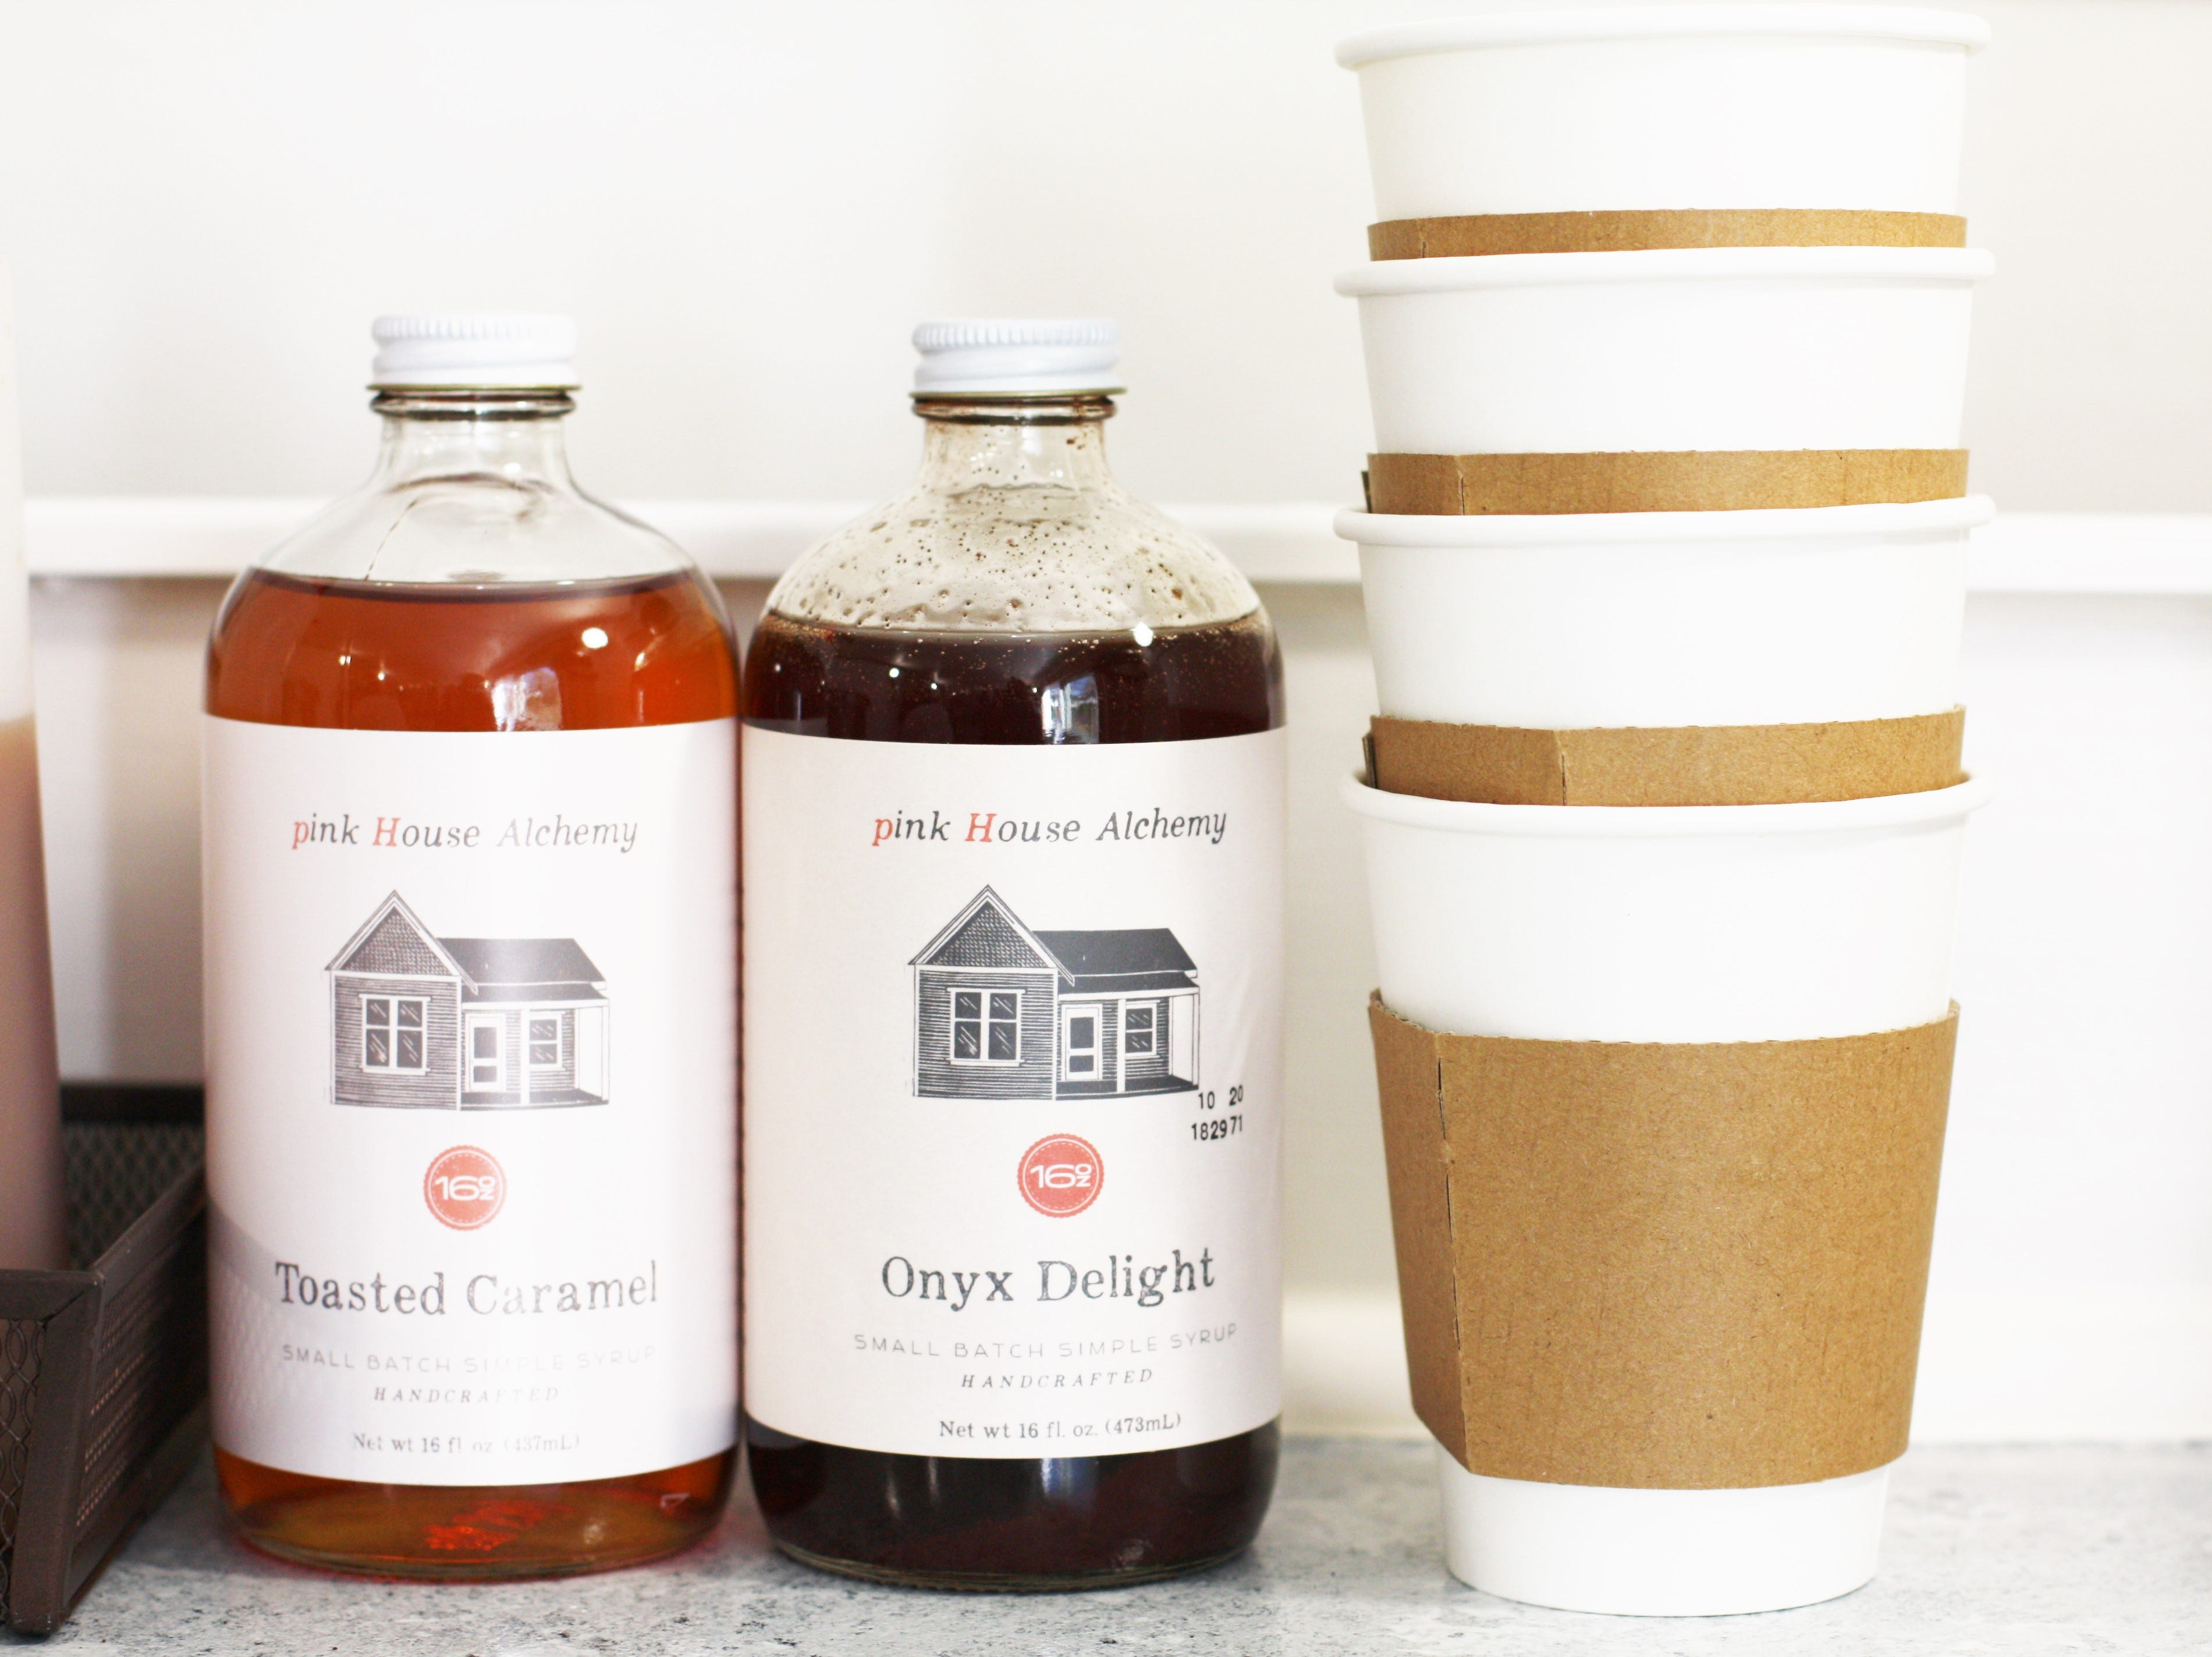 """""""My family lives in Arkansas, and that's where we discovered pink House Alchemy syrups – they're made with quality, natural ingredients like cinnamon, honey, cane sugar and vanilla extract,"""" said Collin Napier, owner of Brynn Coffee Co."""